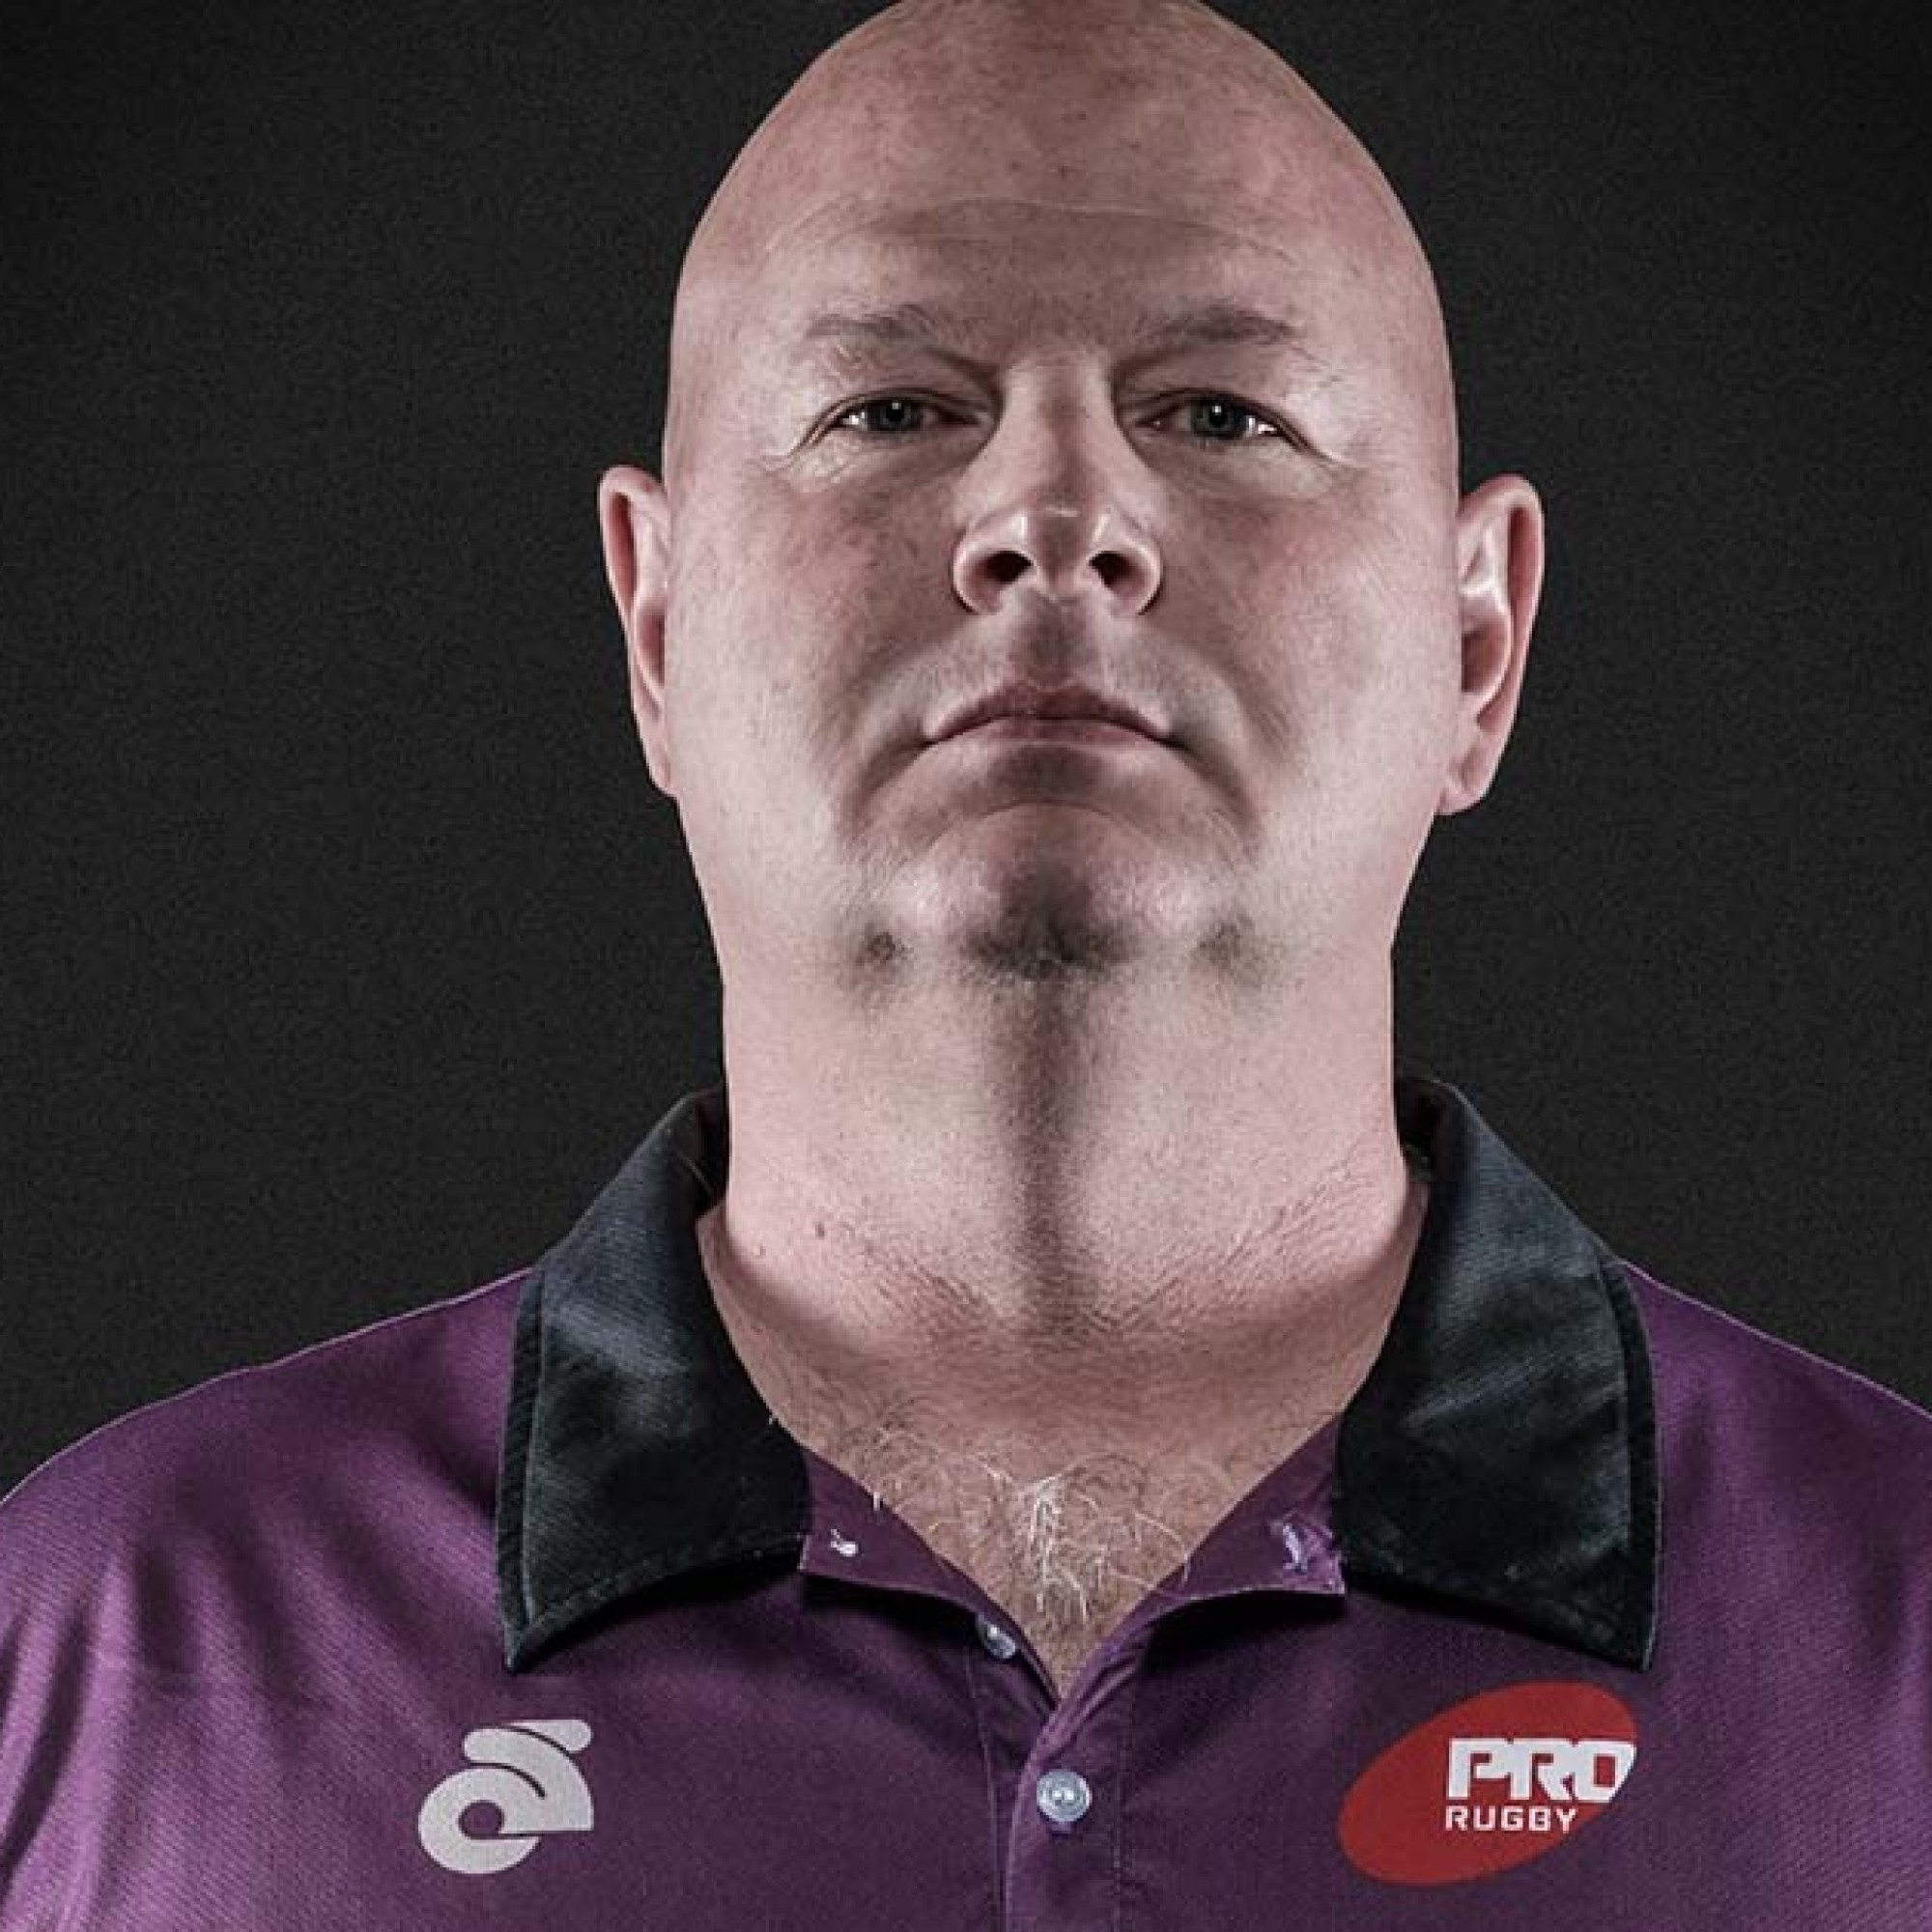 The Irishman leading the mile-high rugby revolution in sports-mad Denver